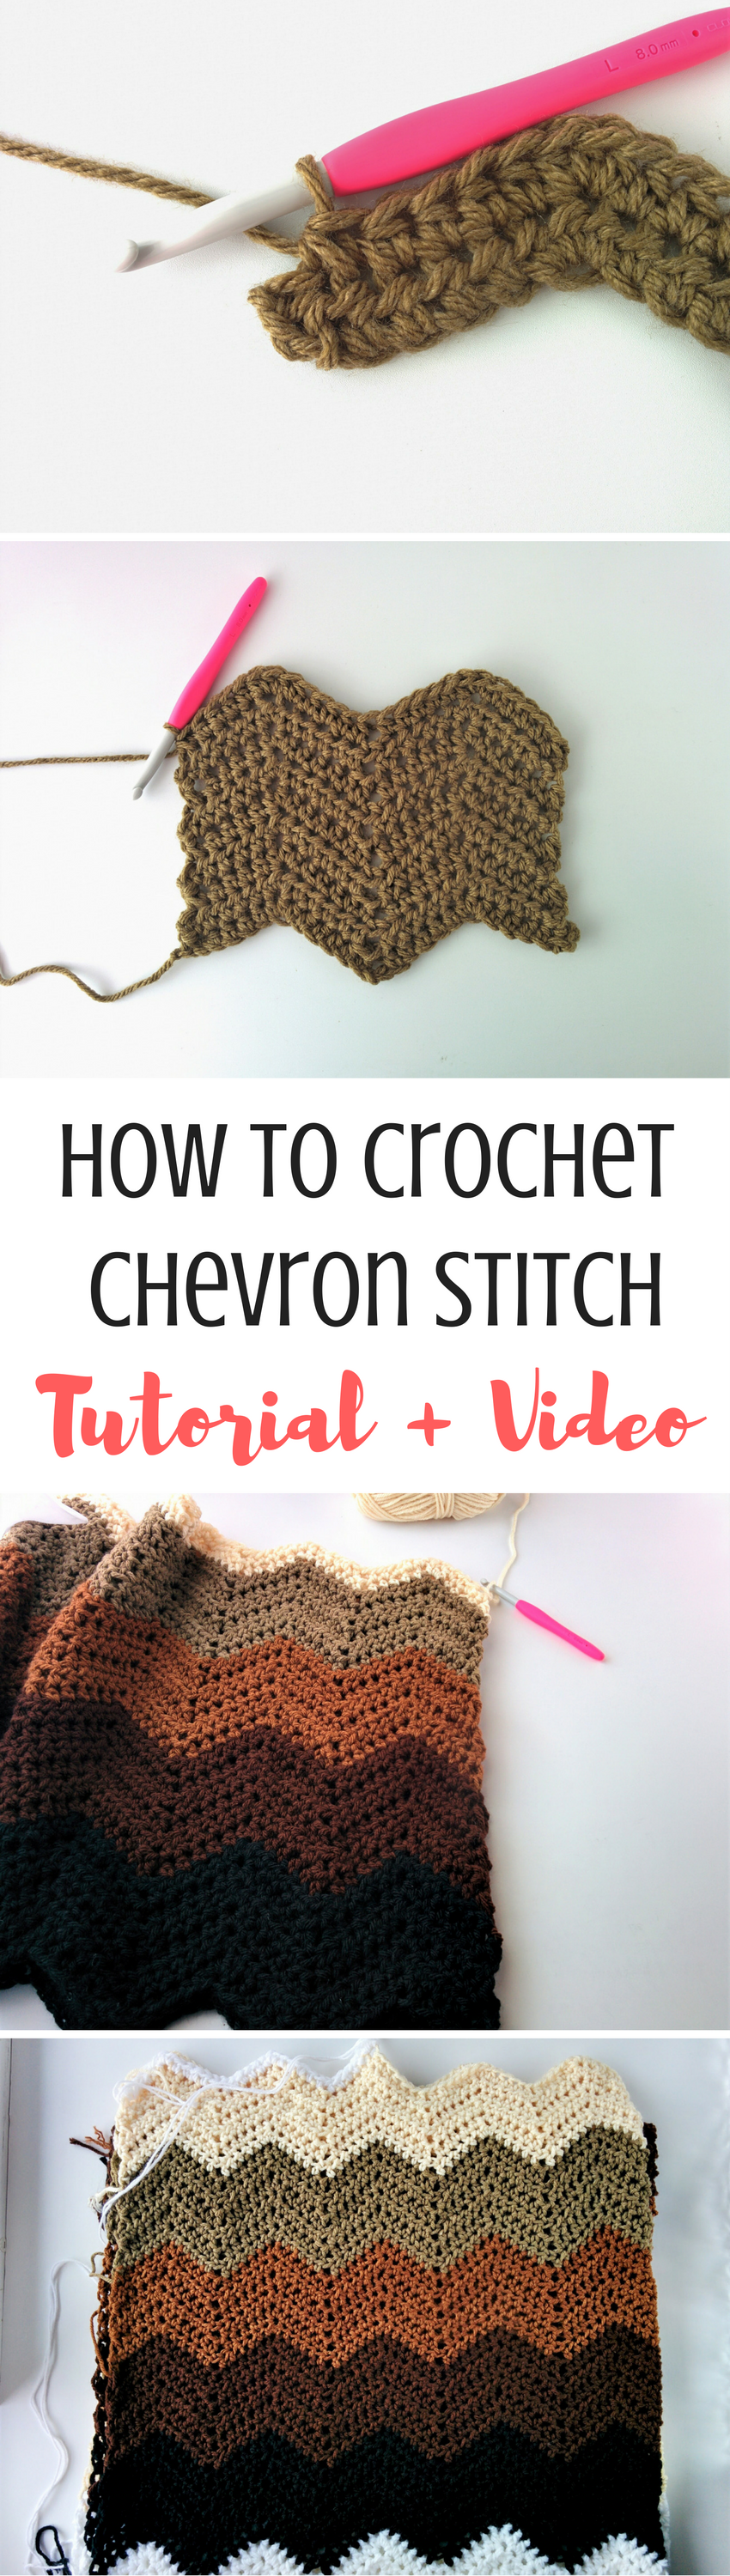 How to Crochet Chevron Stitch [Video + Written] | Tejido, Puntadas y ...